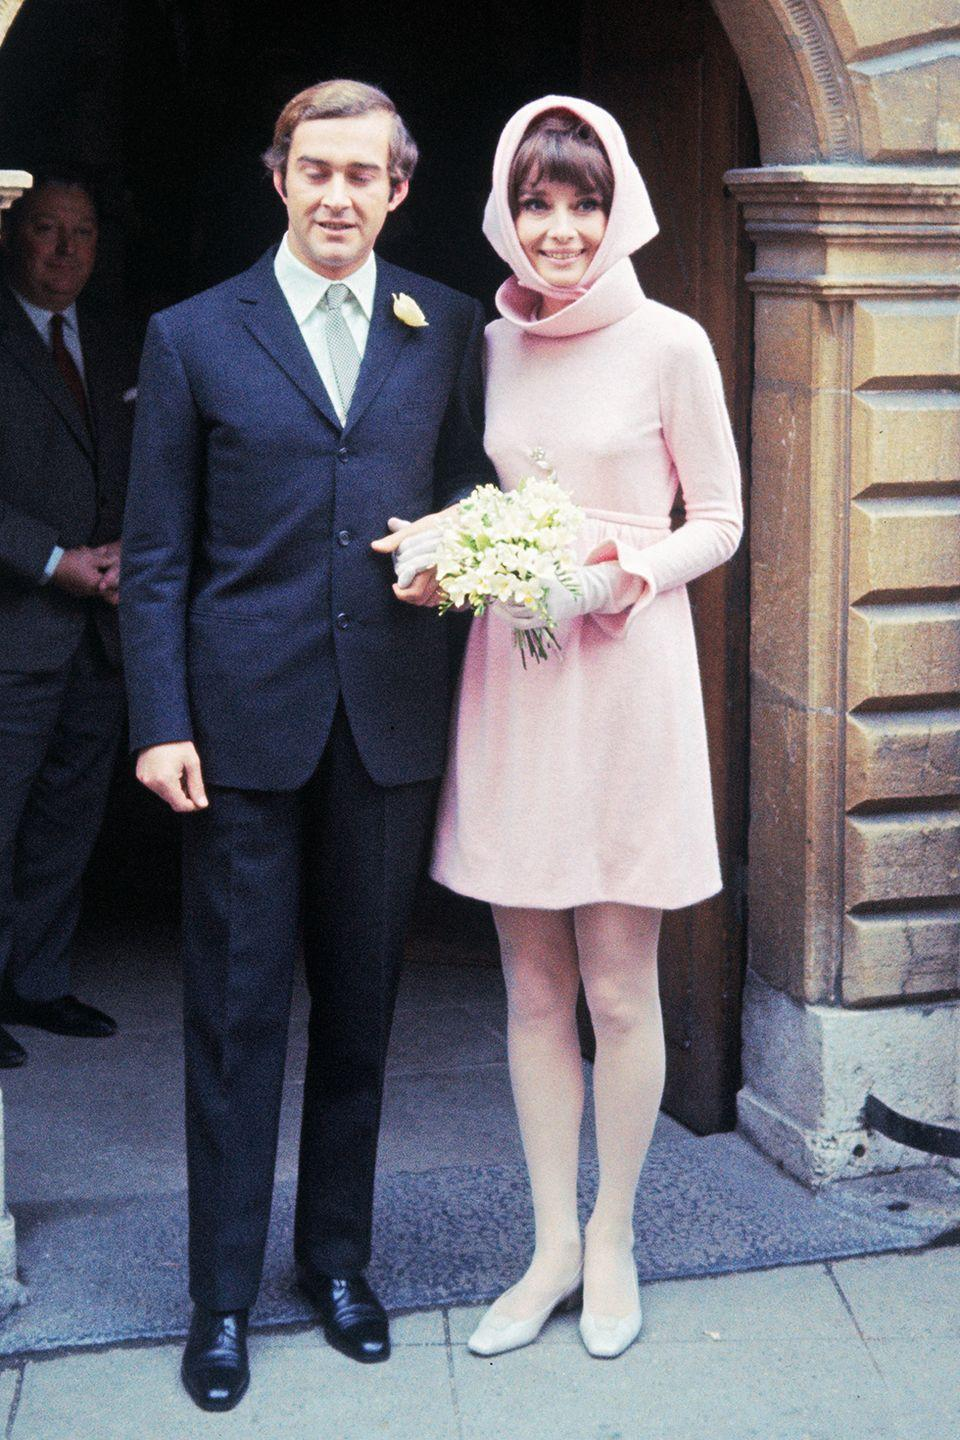 """<p>The high-collared wedding dress Audrey wore to wed her second husband, psychiatrist Andrea Dotti, in Morges, Switzerland, captured her signature simple style.</p><p><strong>RELATED</strong>: <a href=""""https://www.goodhousekeeping.com/life/relationships/a44710/audrey-hepburn-love-life-timeline/"""" rel=""""nofollow noopener"""" target=""""_blank"""" data-ylk=""""slk:A Timeline of Audrey Hepburn's Hollywood Love Stories"""" class=""""link rapid-noclick-resp"""">A Timeline of Audrey Hepburn's Hollywood Love Stories</a></p>"""